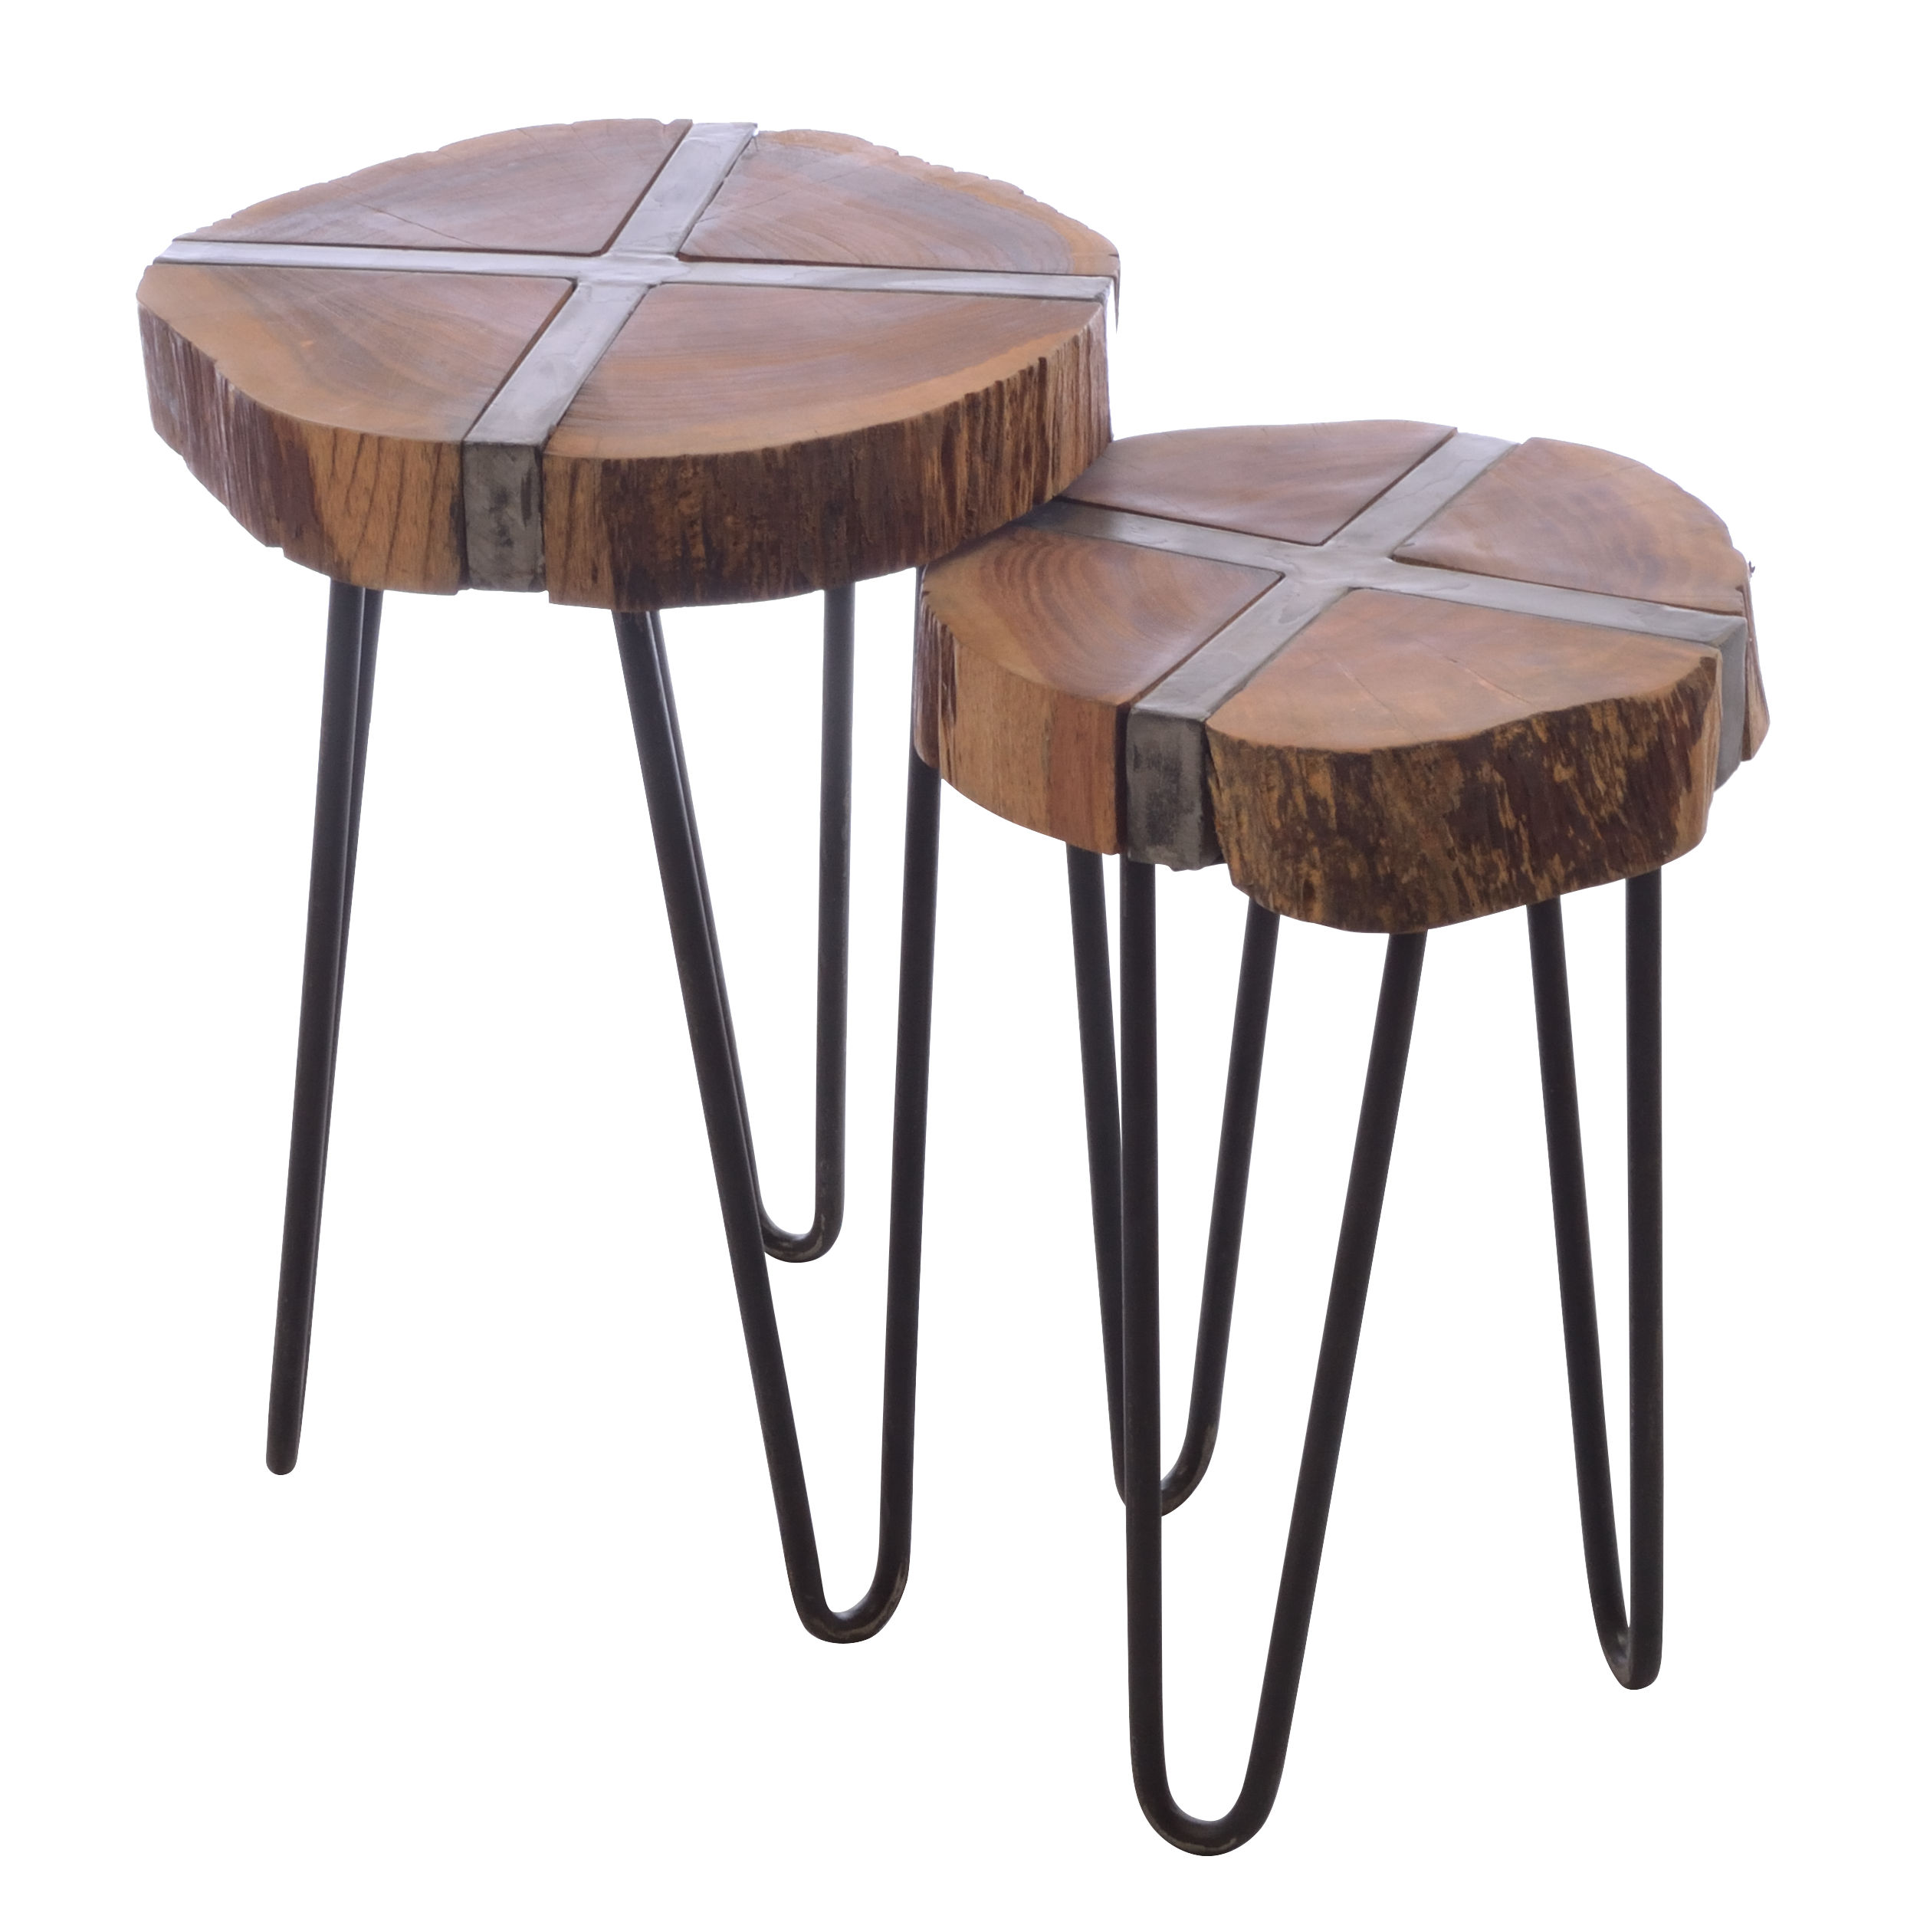 Old Empire Nest of Tables £159